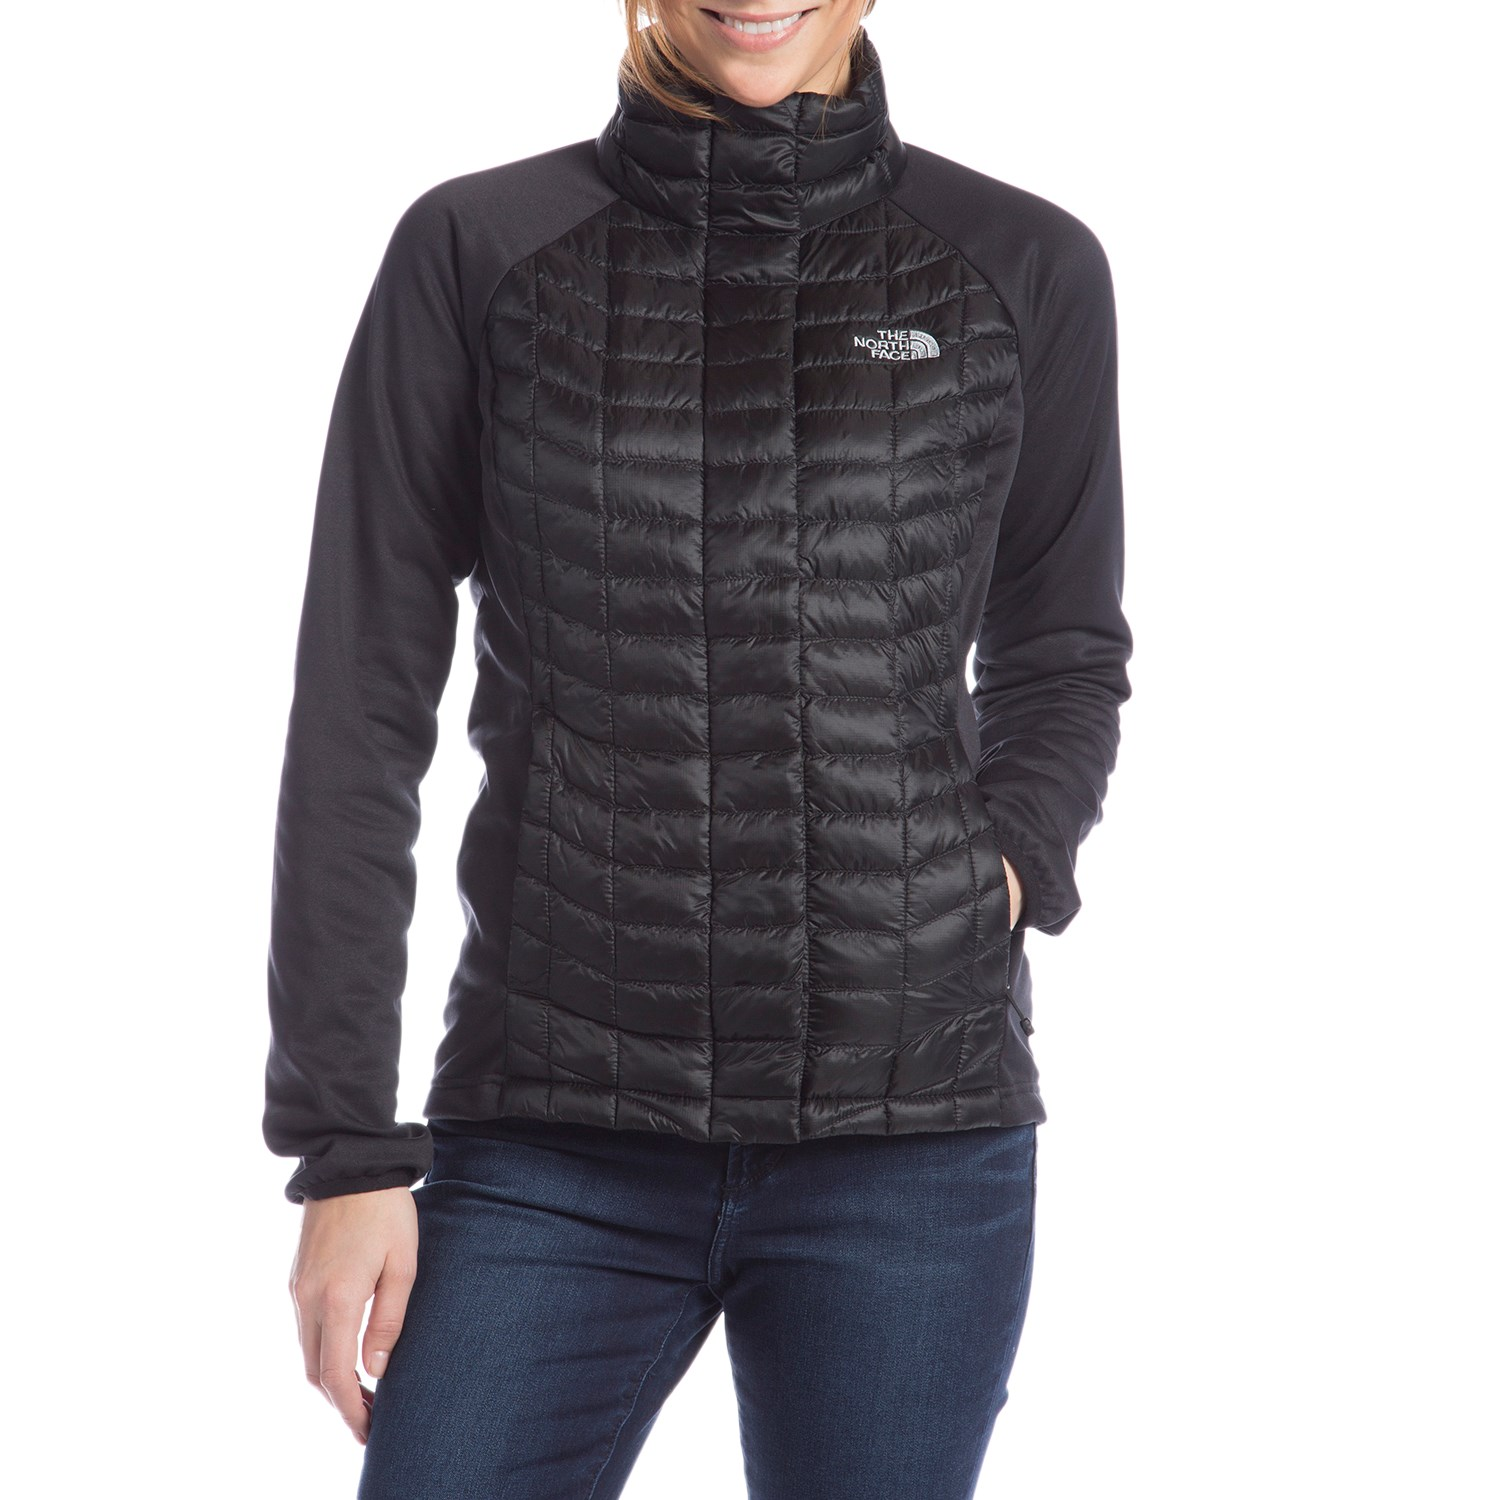 d81c48d1f The North Face Thermoball Hybrid Full-Zip Jacket - Women's | evo